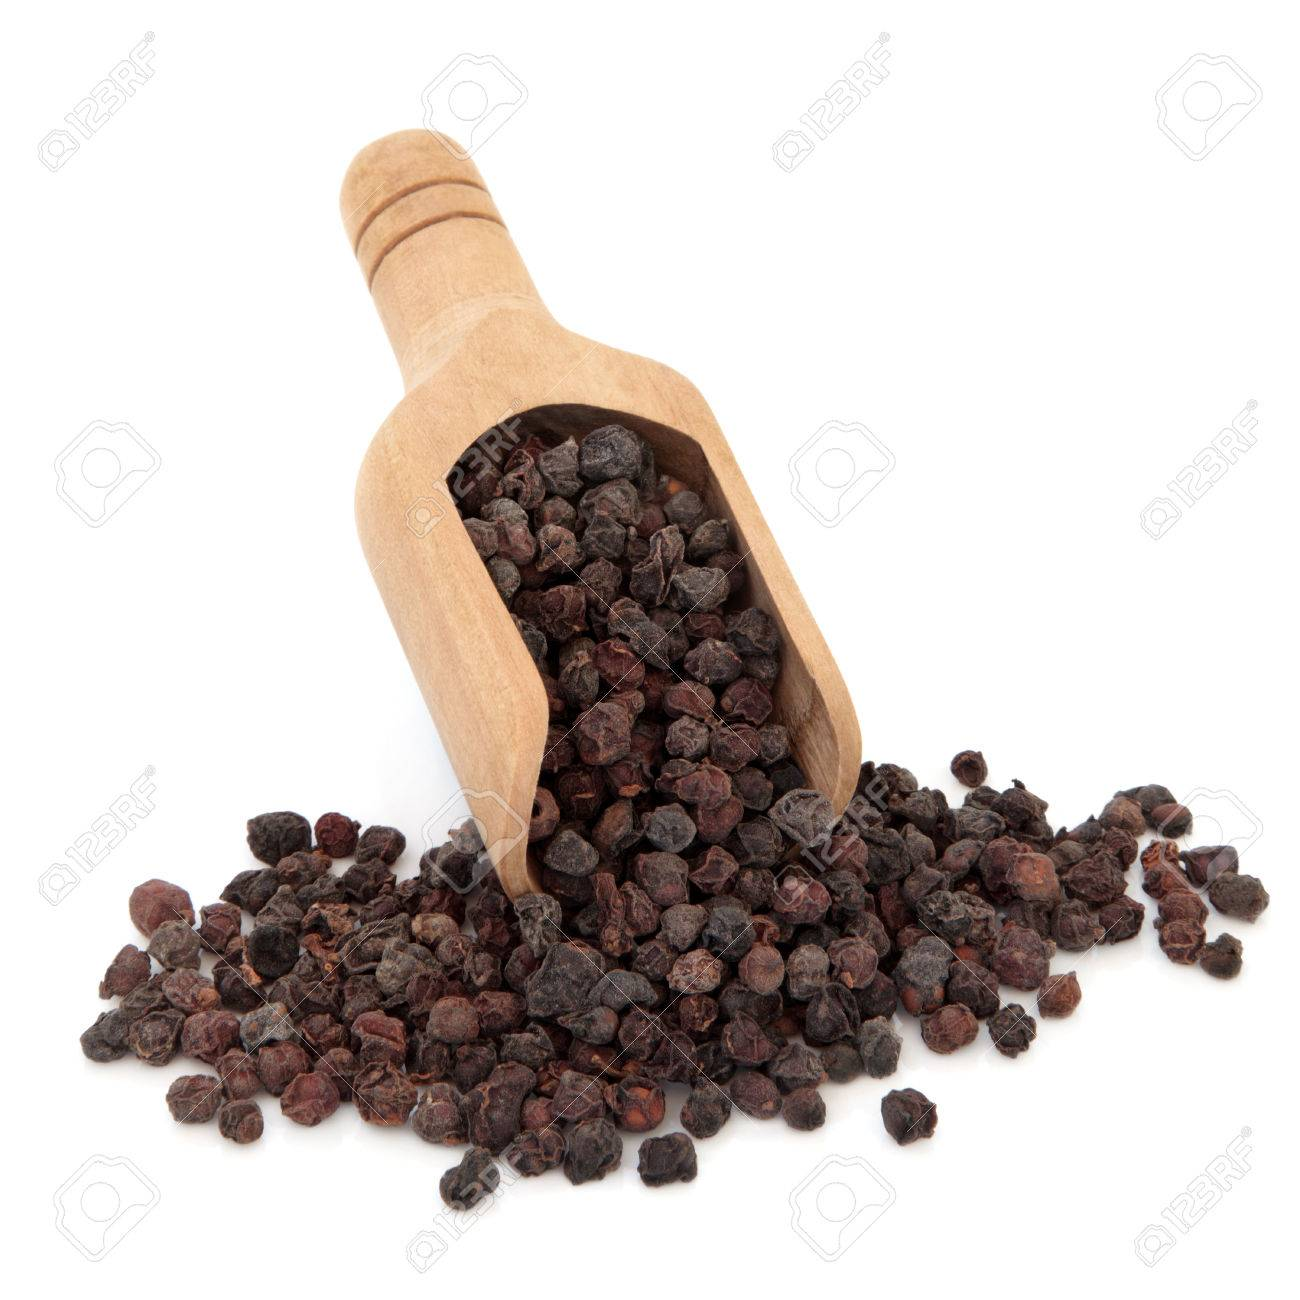 Wu Wei Zi Schisandra Berries Used In Chinese Herbal Medicine In A Wooden